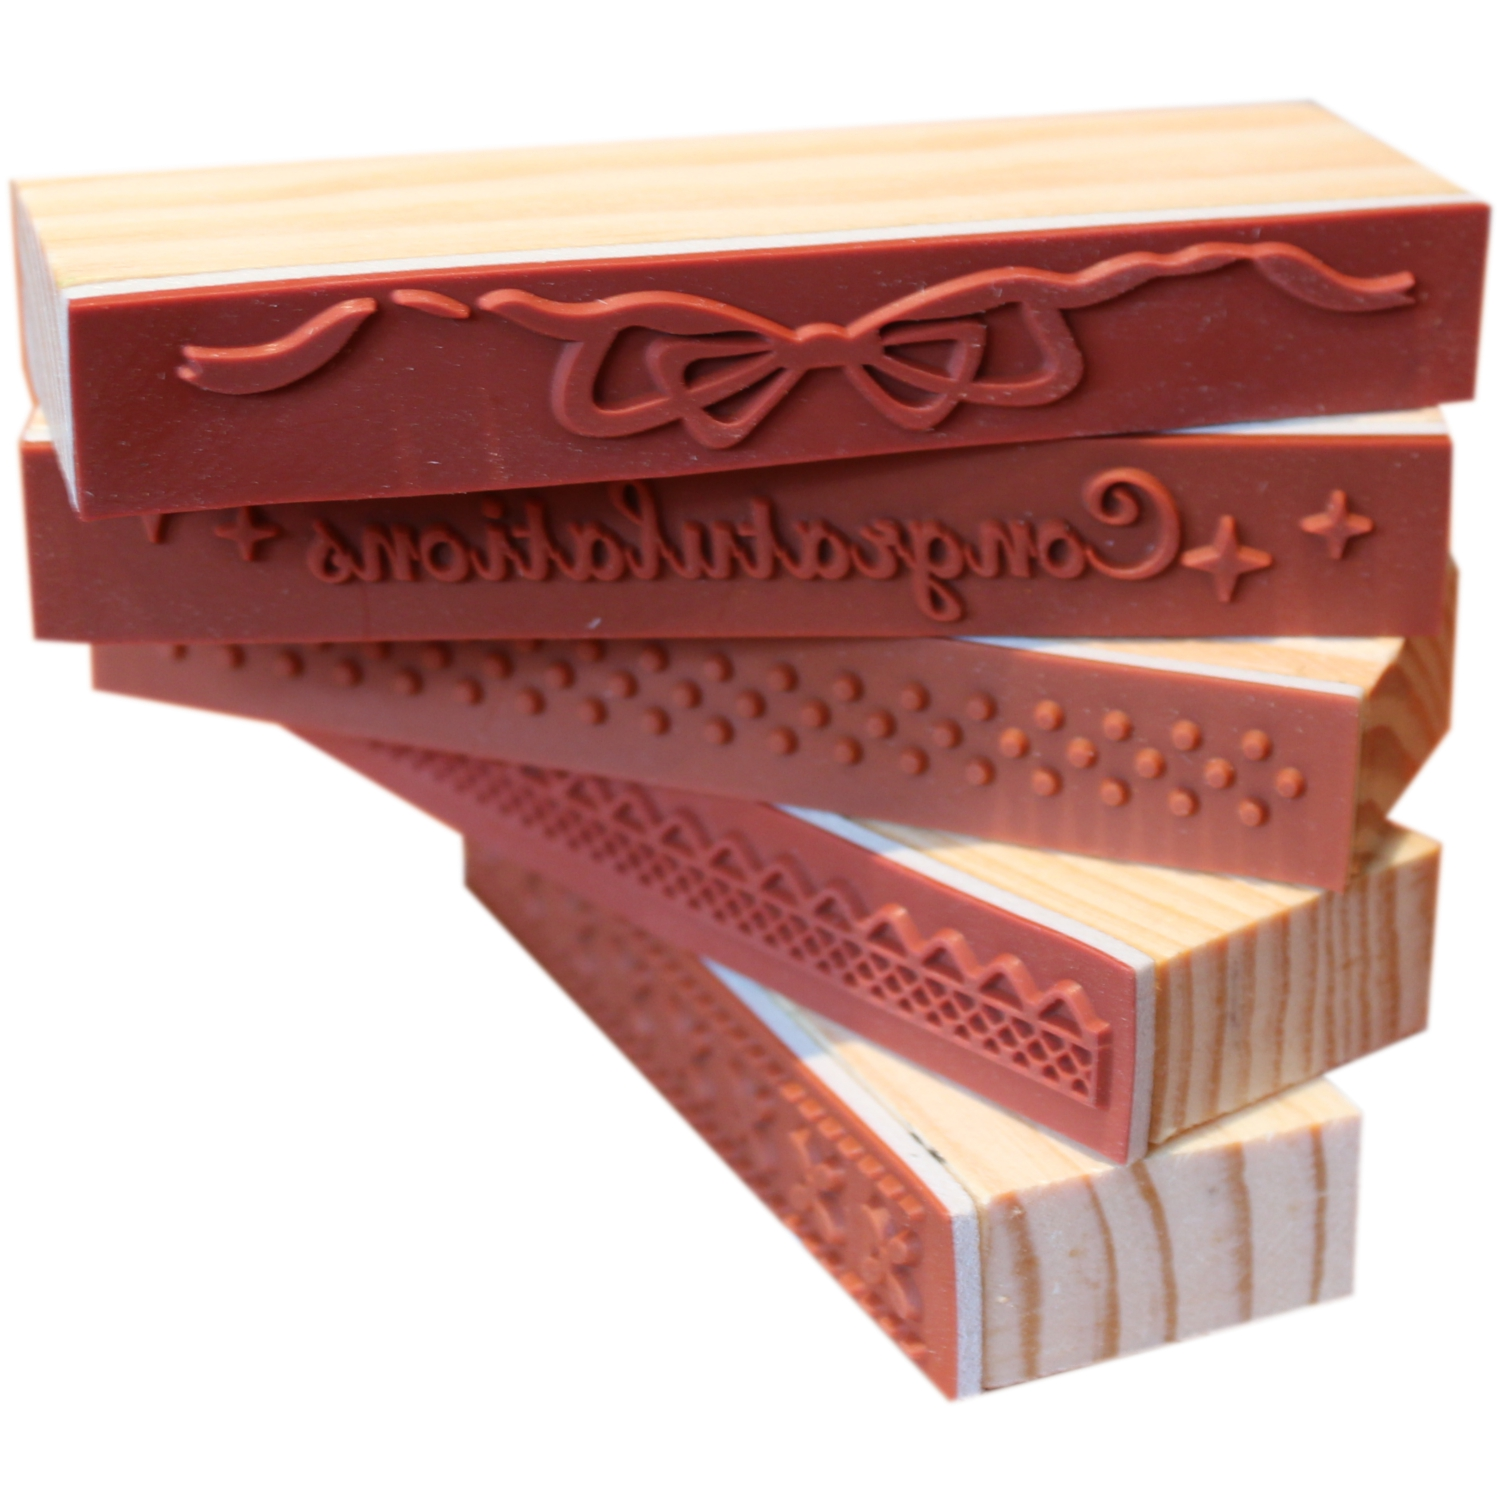 Wooden rubber arts and crafts stamp ebay for Rubber stamps arts and crafts